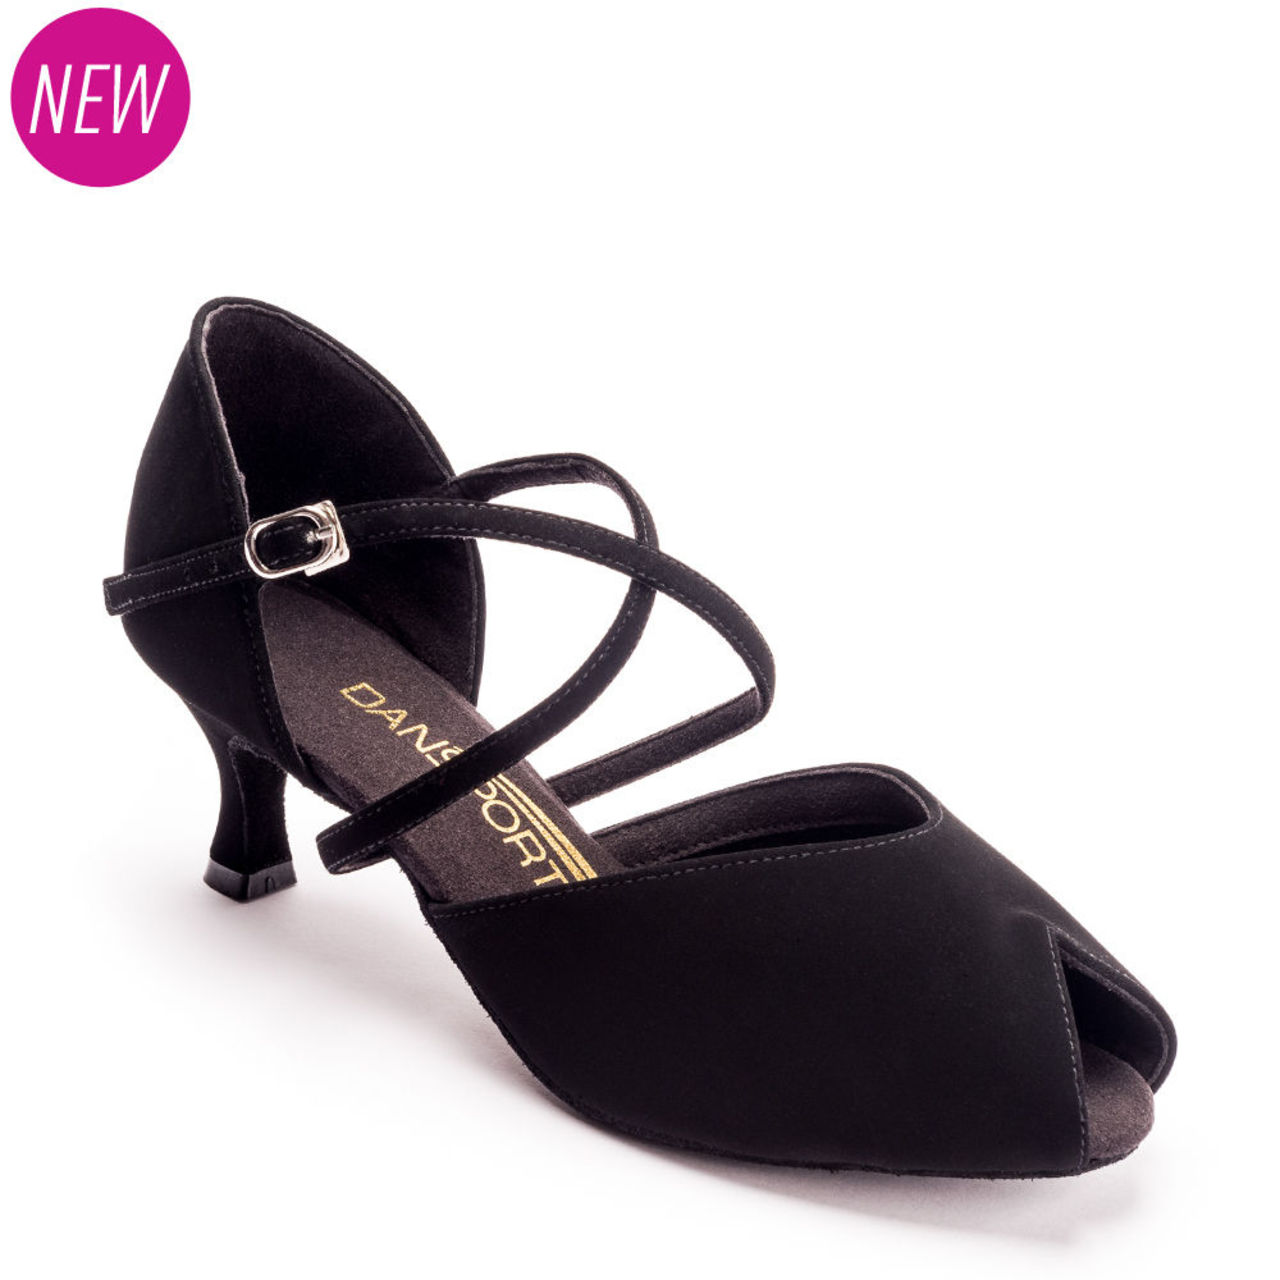 S4016 - BLACK NUBUCK